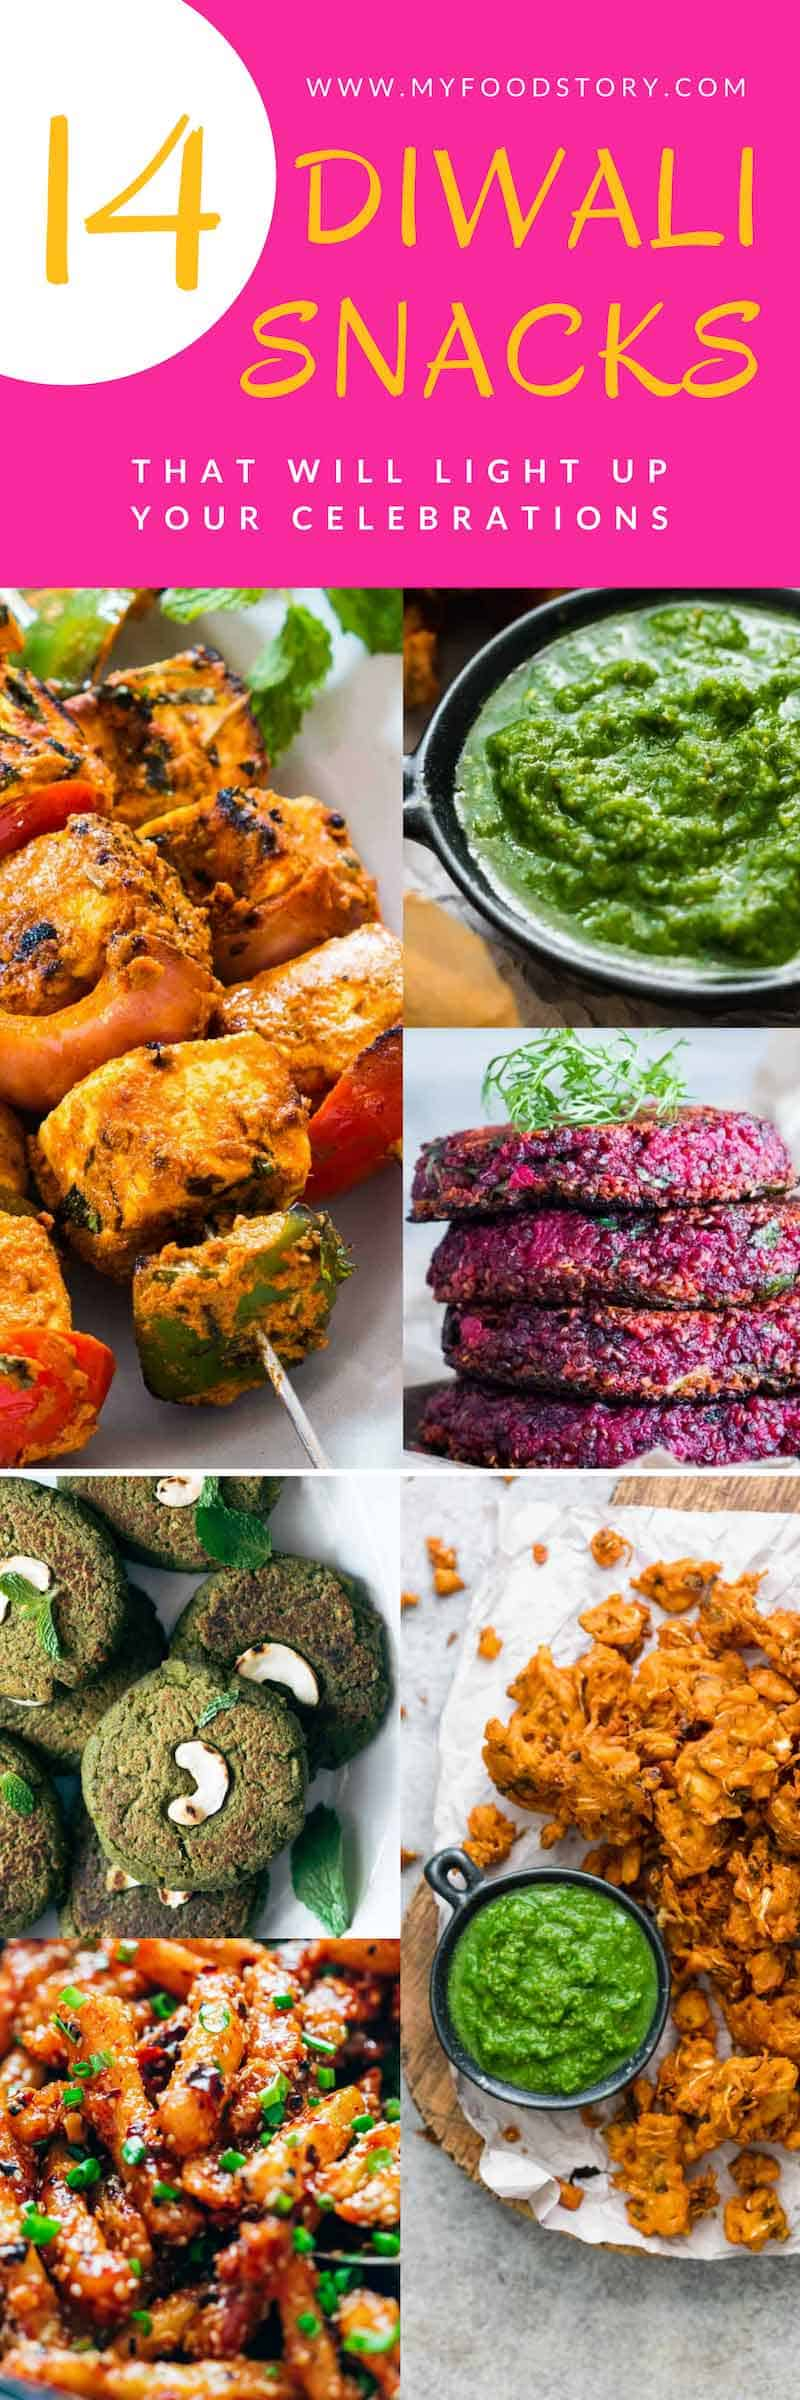 A collection of 14 Diwali snack recipes that are sure to light up your Diwali Party! These recipes are easy and most of them can be made ahead so that you can spend more time with your guests than in the kitchen.